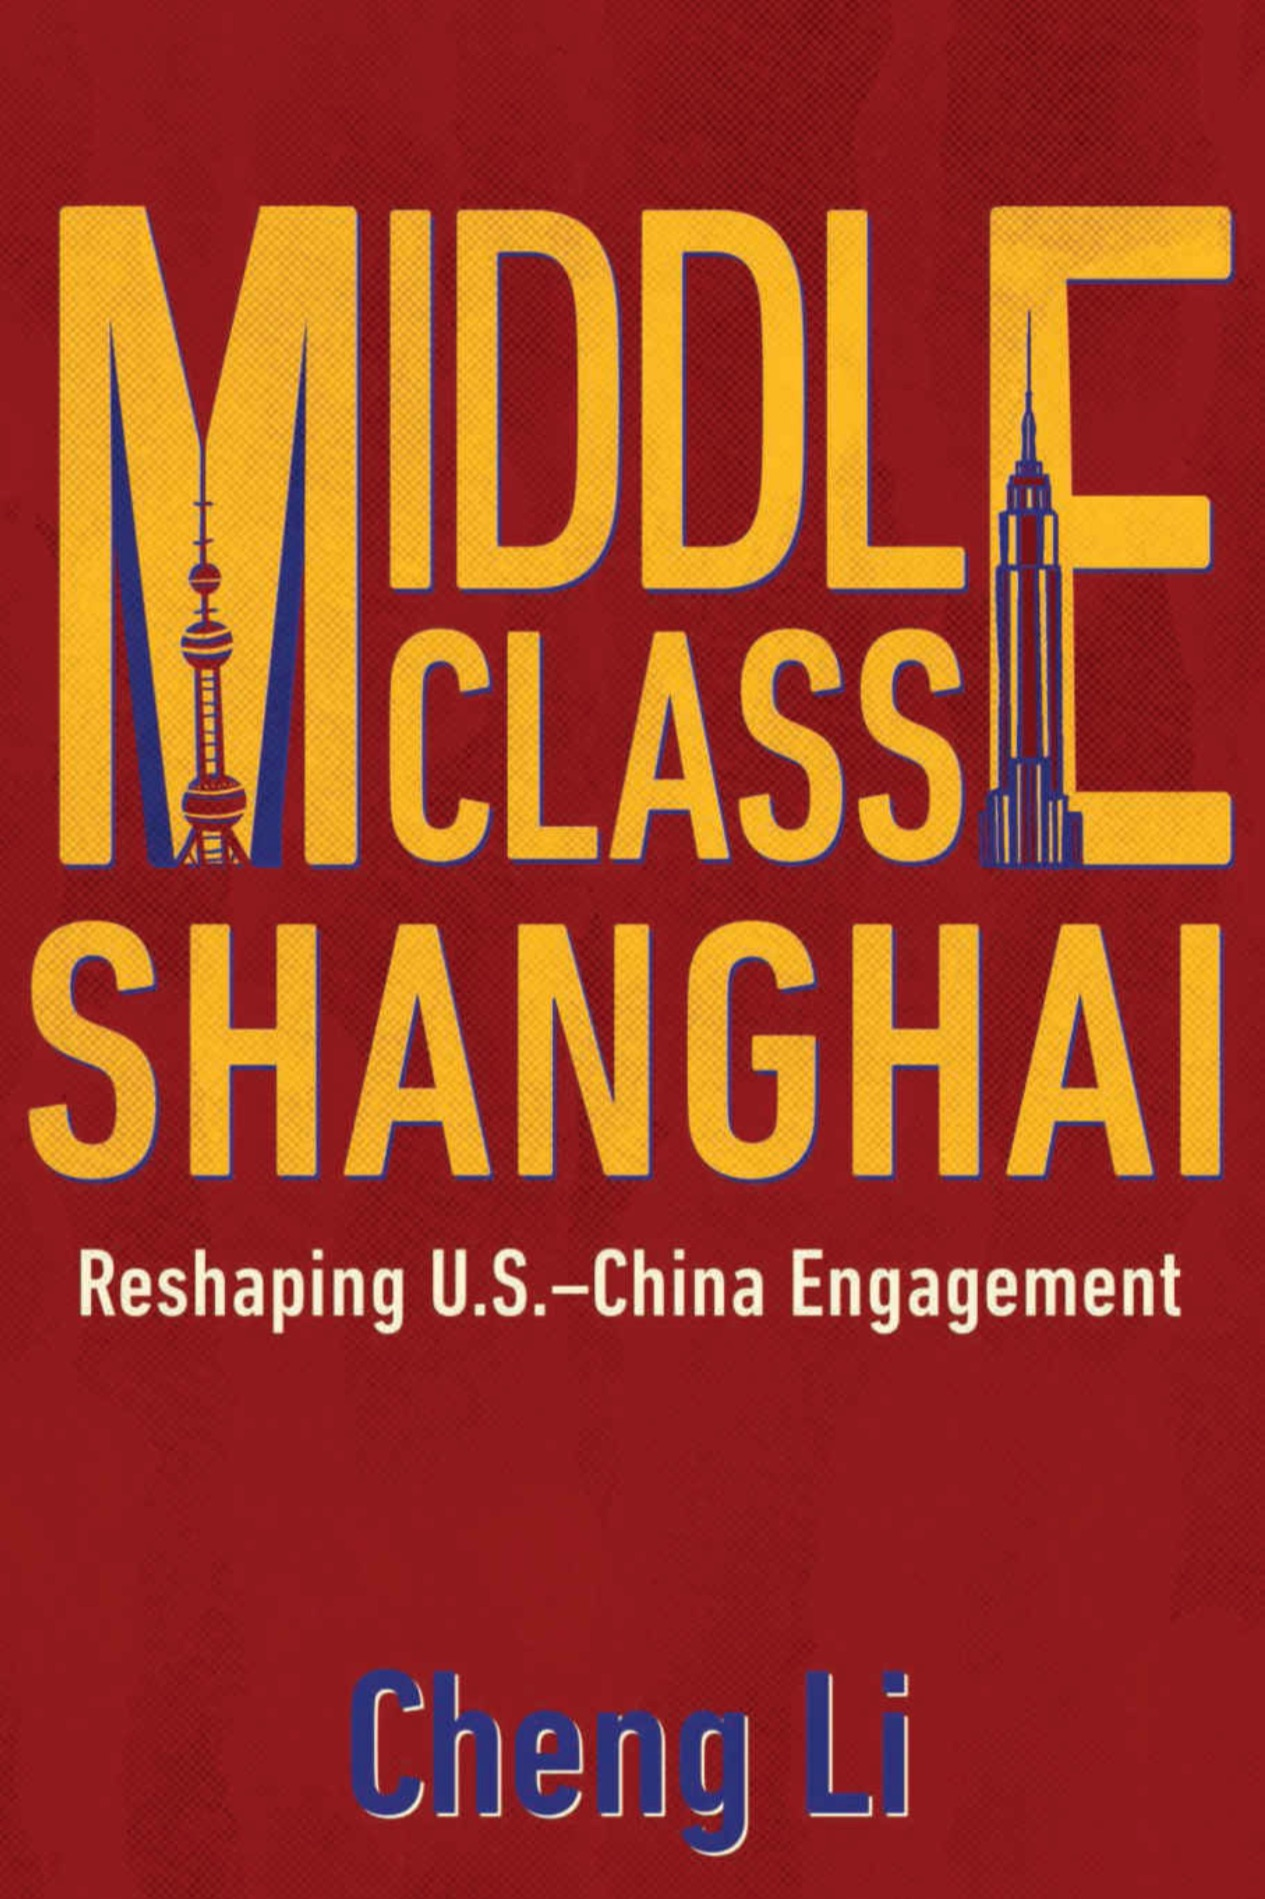 'Middle Class Shanghai: Reshaping U.S.-China Engagement'